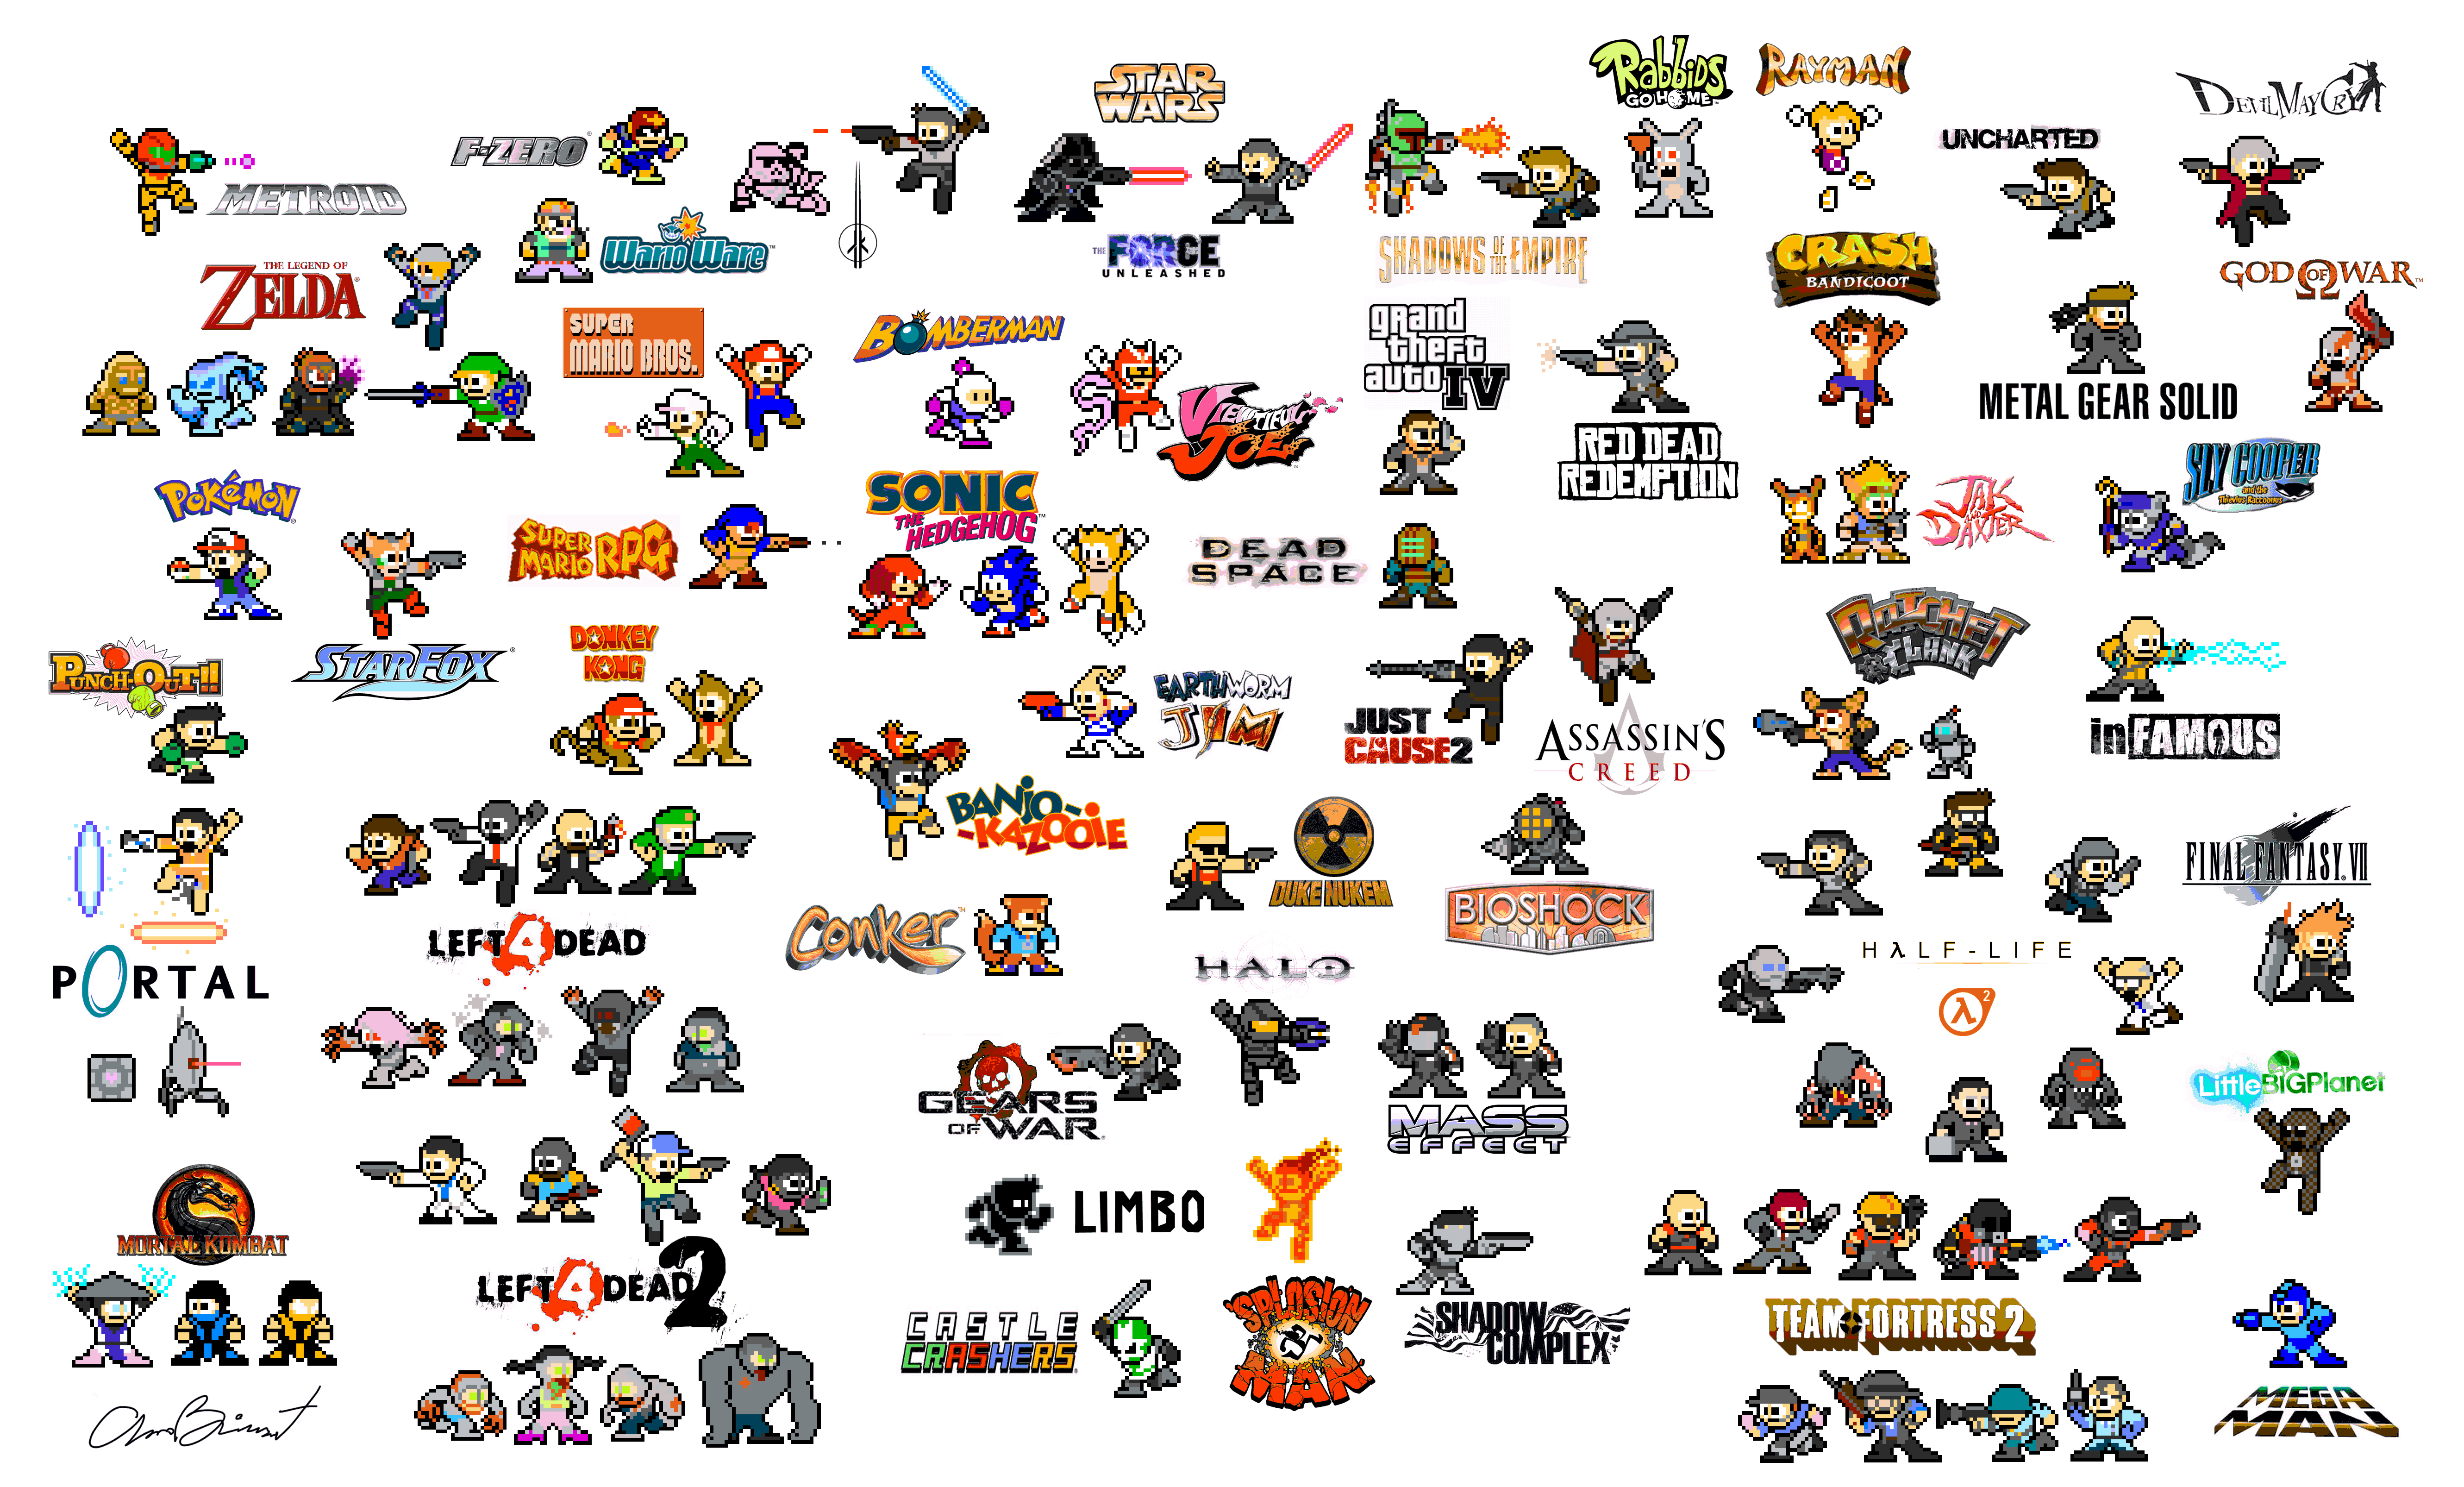 8 Bit clipart video game character Same bit as characters with